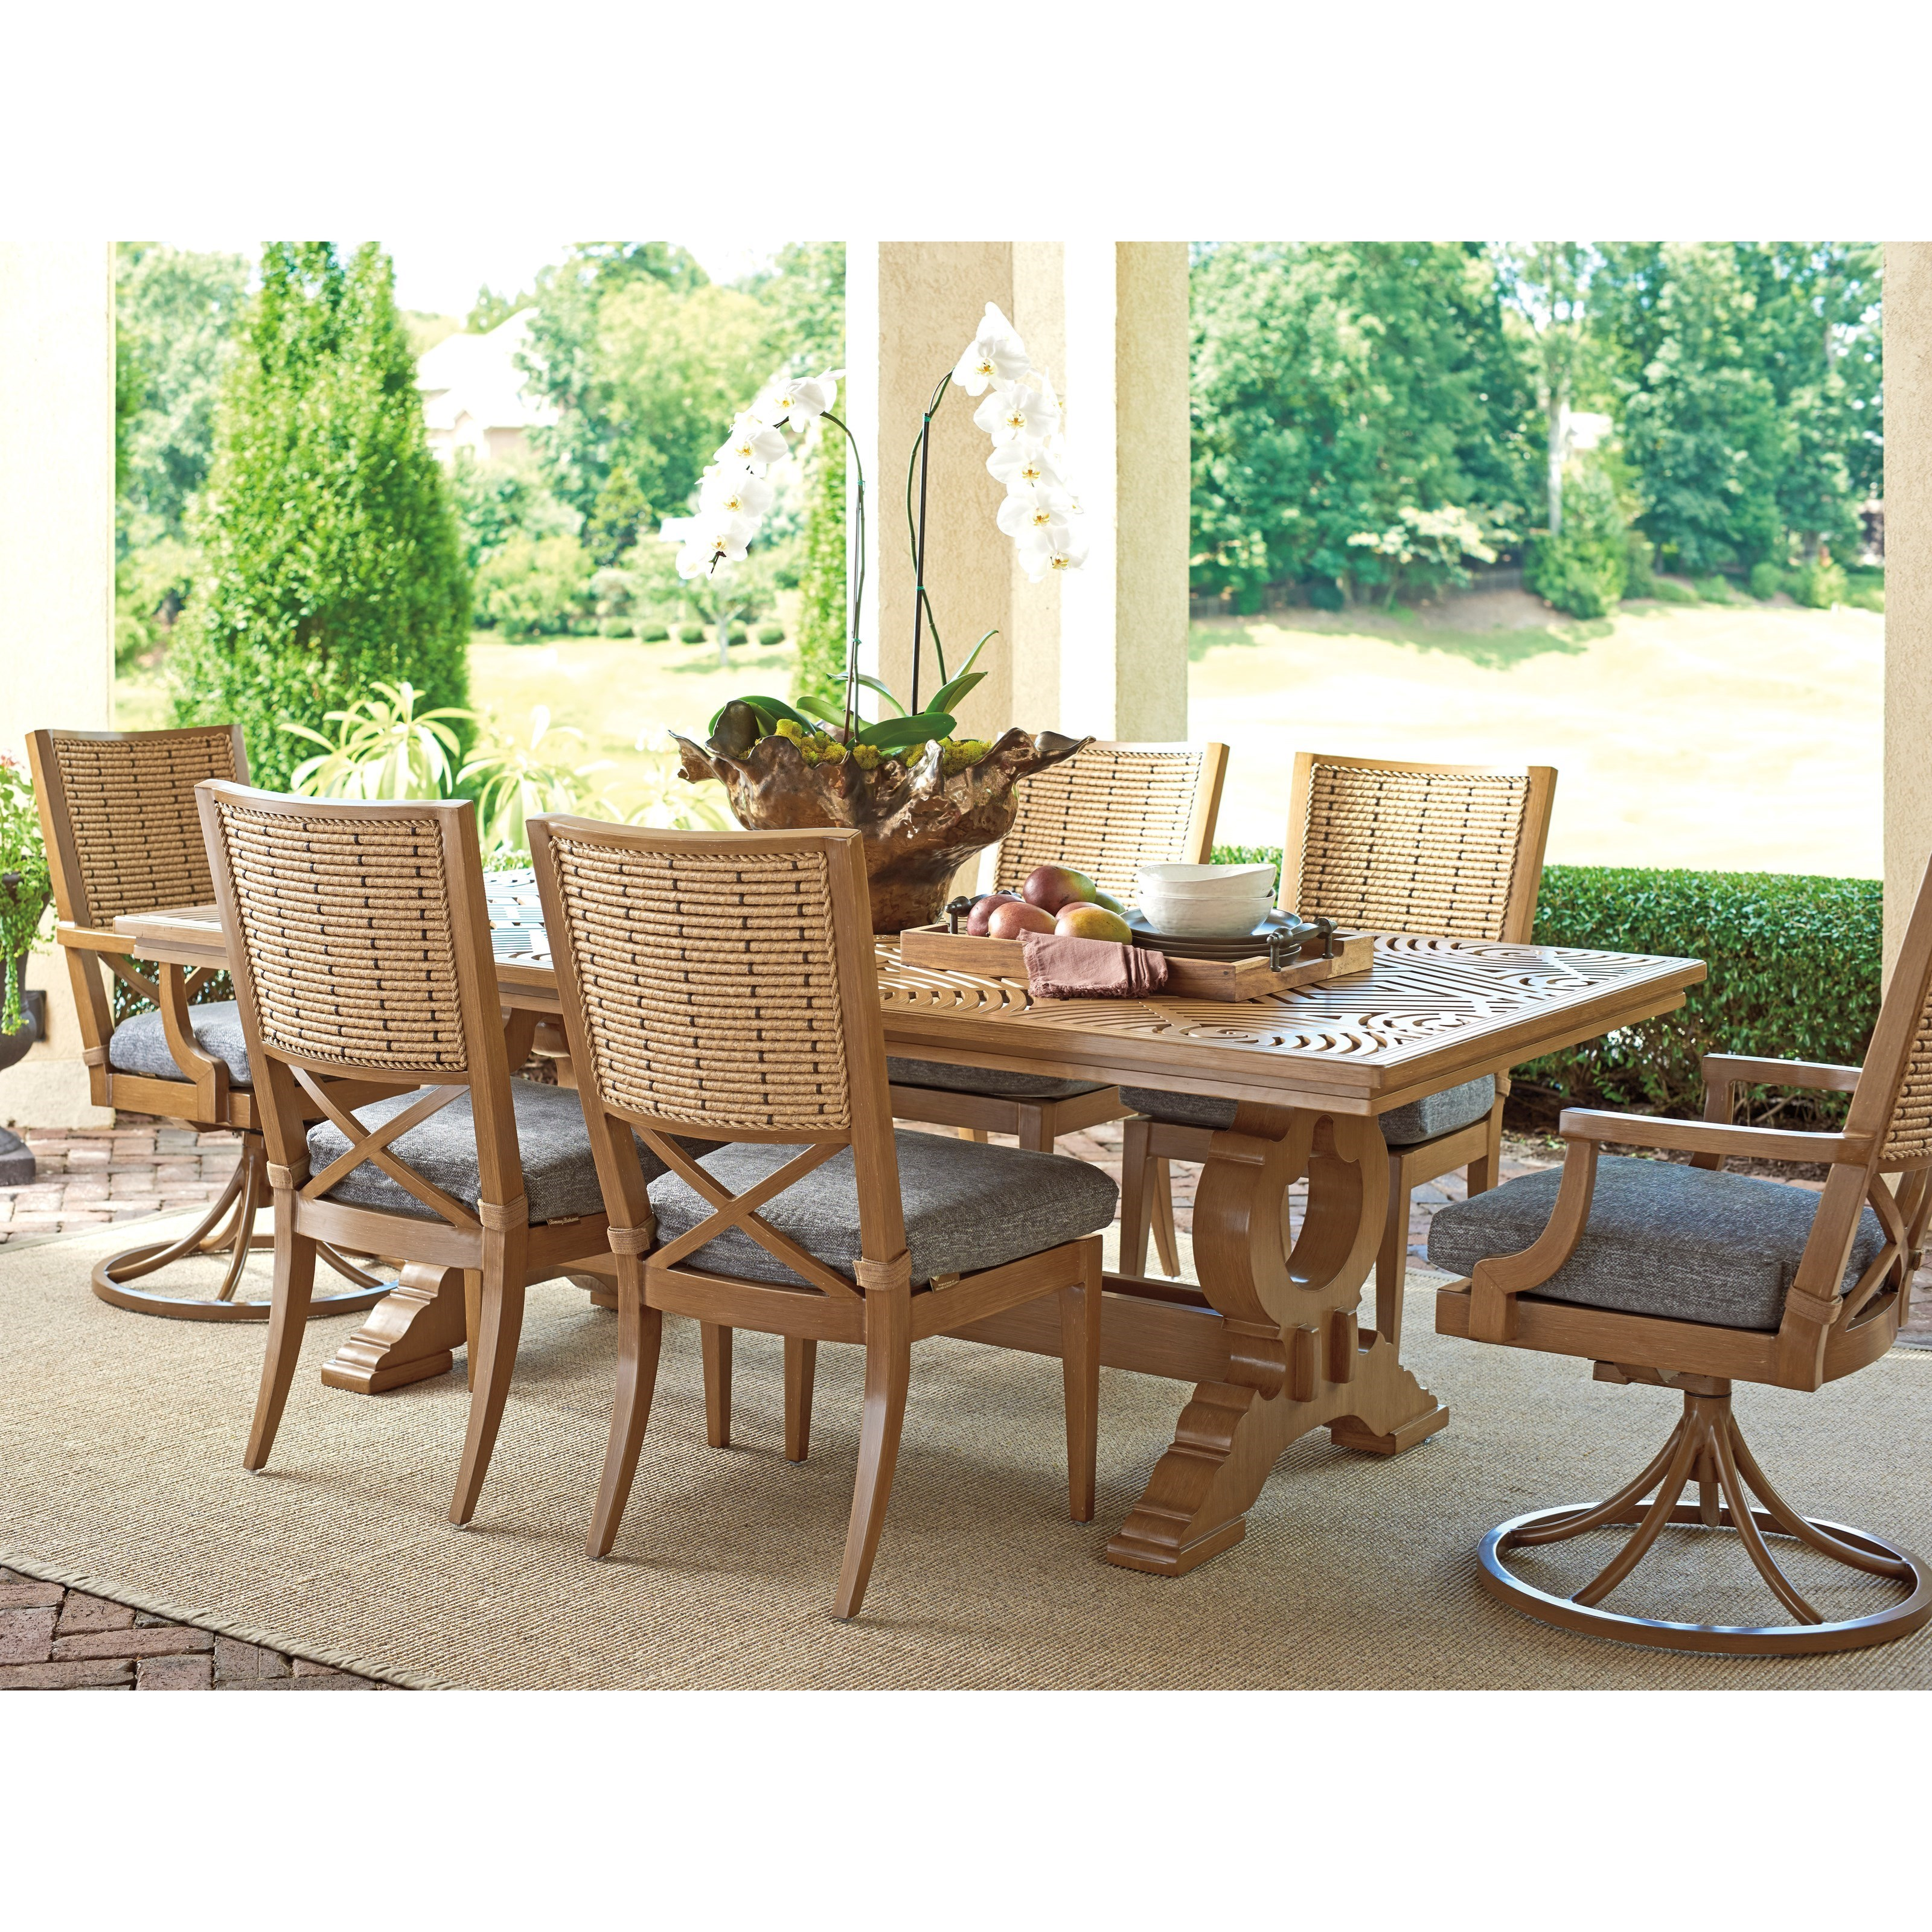 Los Altos Valley View 7-Piece Outdoor Dining Set by Tommy Bahama Outdoor Living at Baer's Furniture